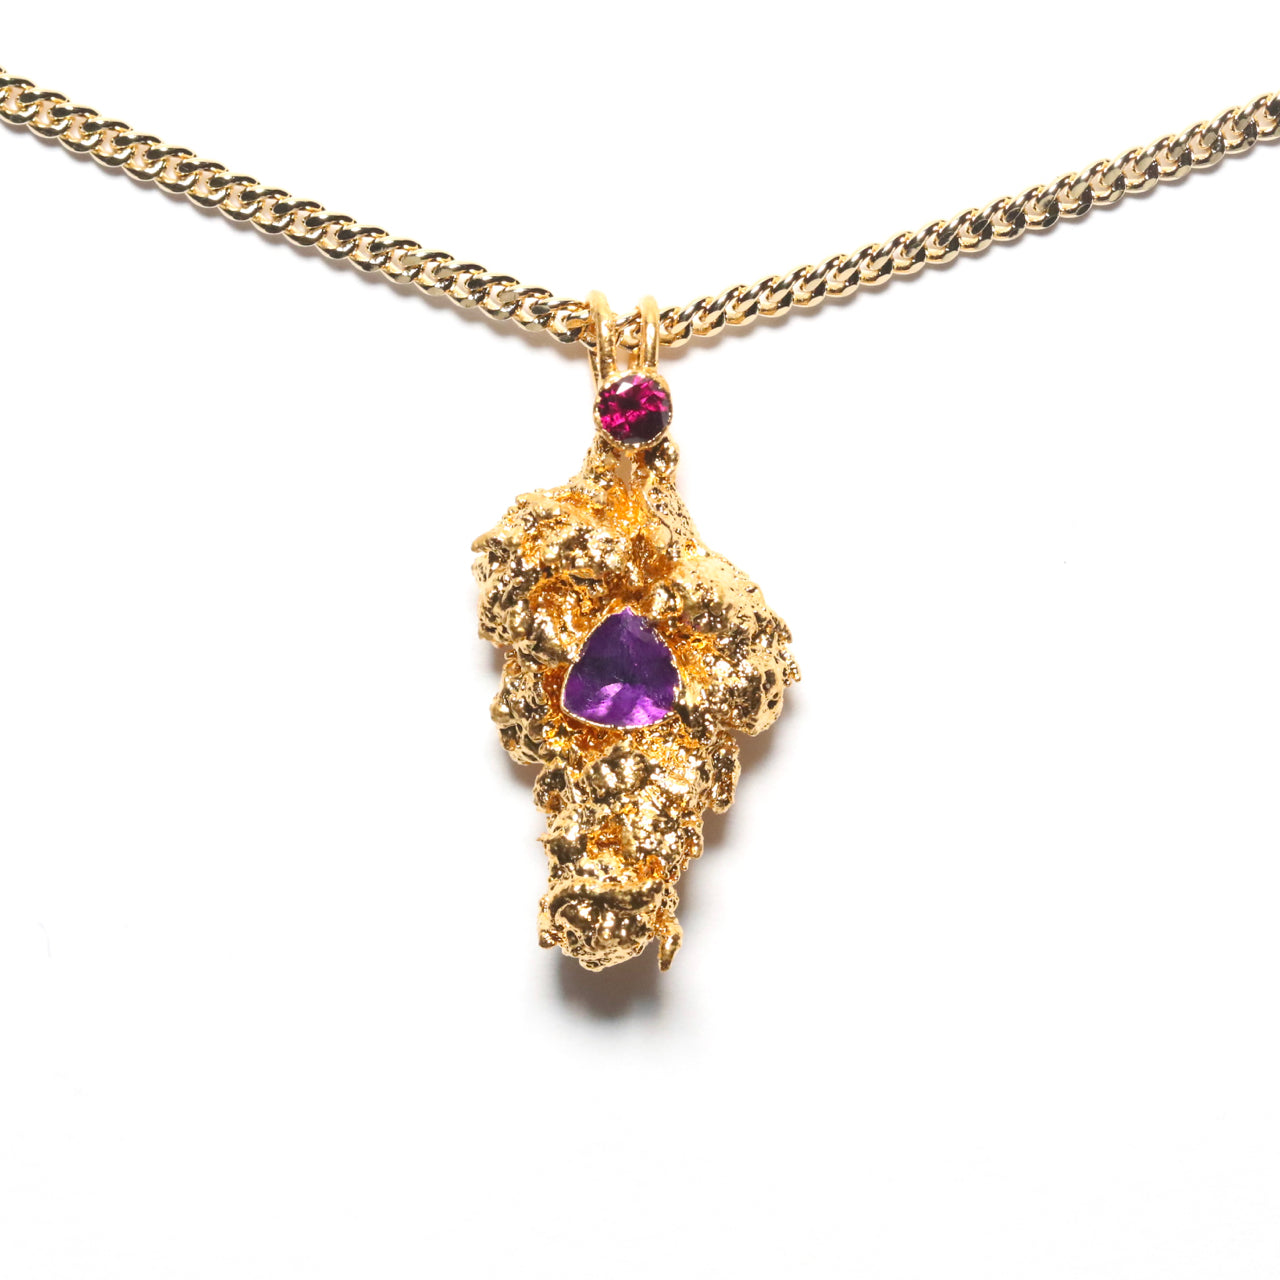 Gold Cannabis Nug with Amethyst and Rhodolite